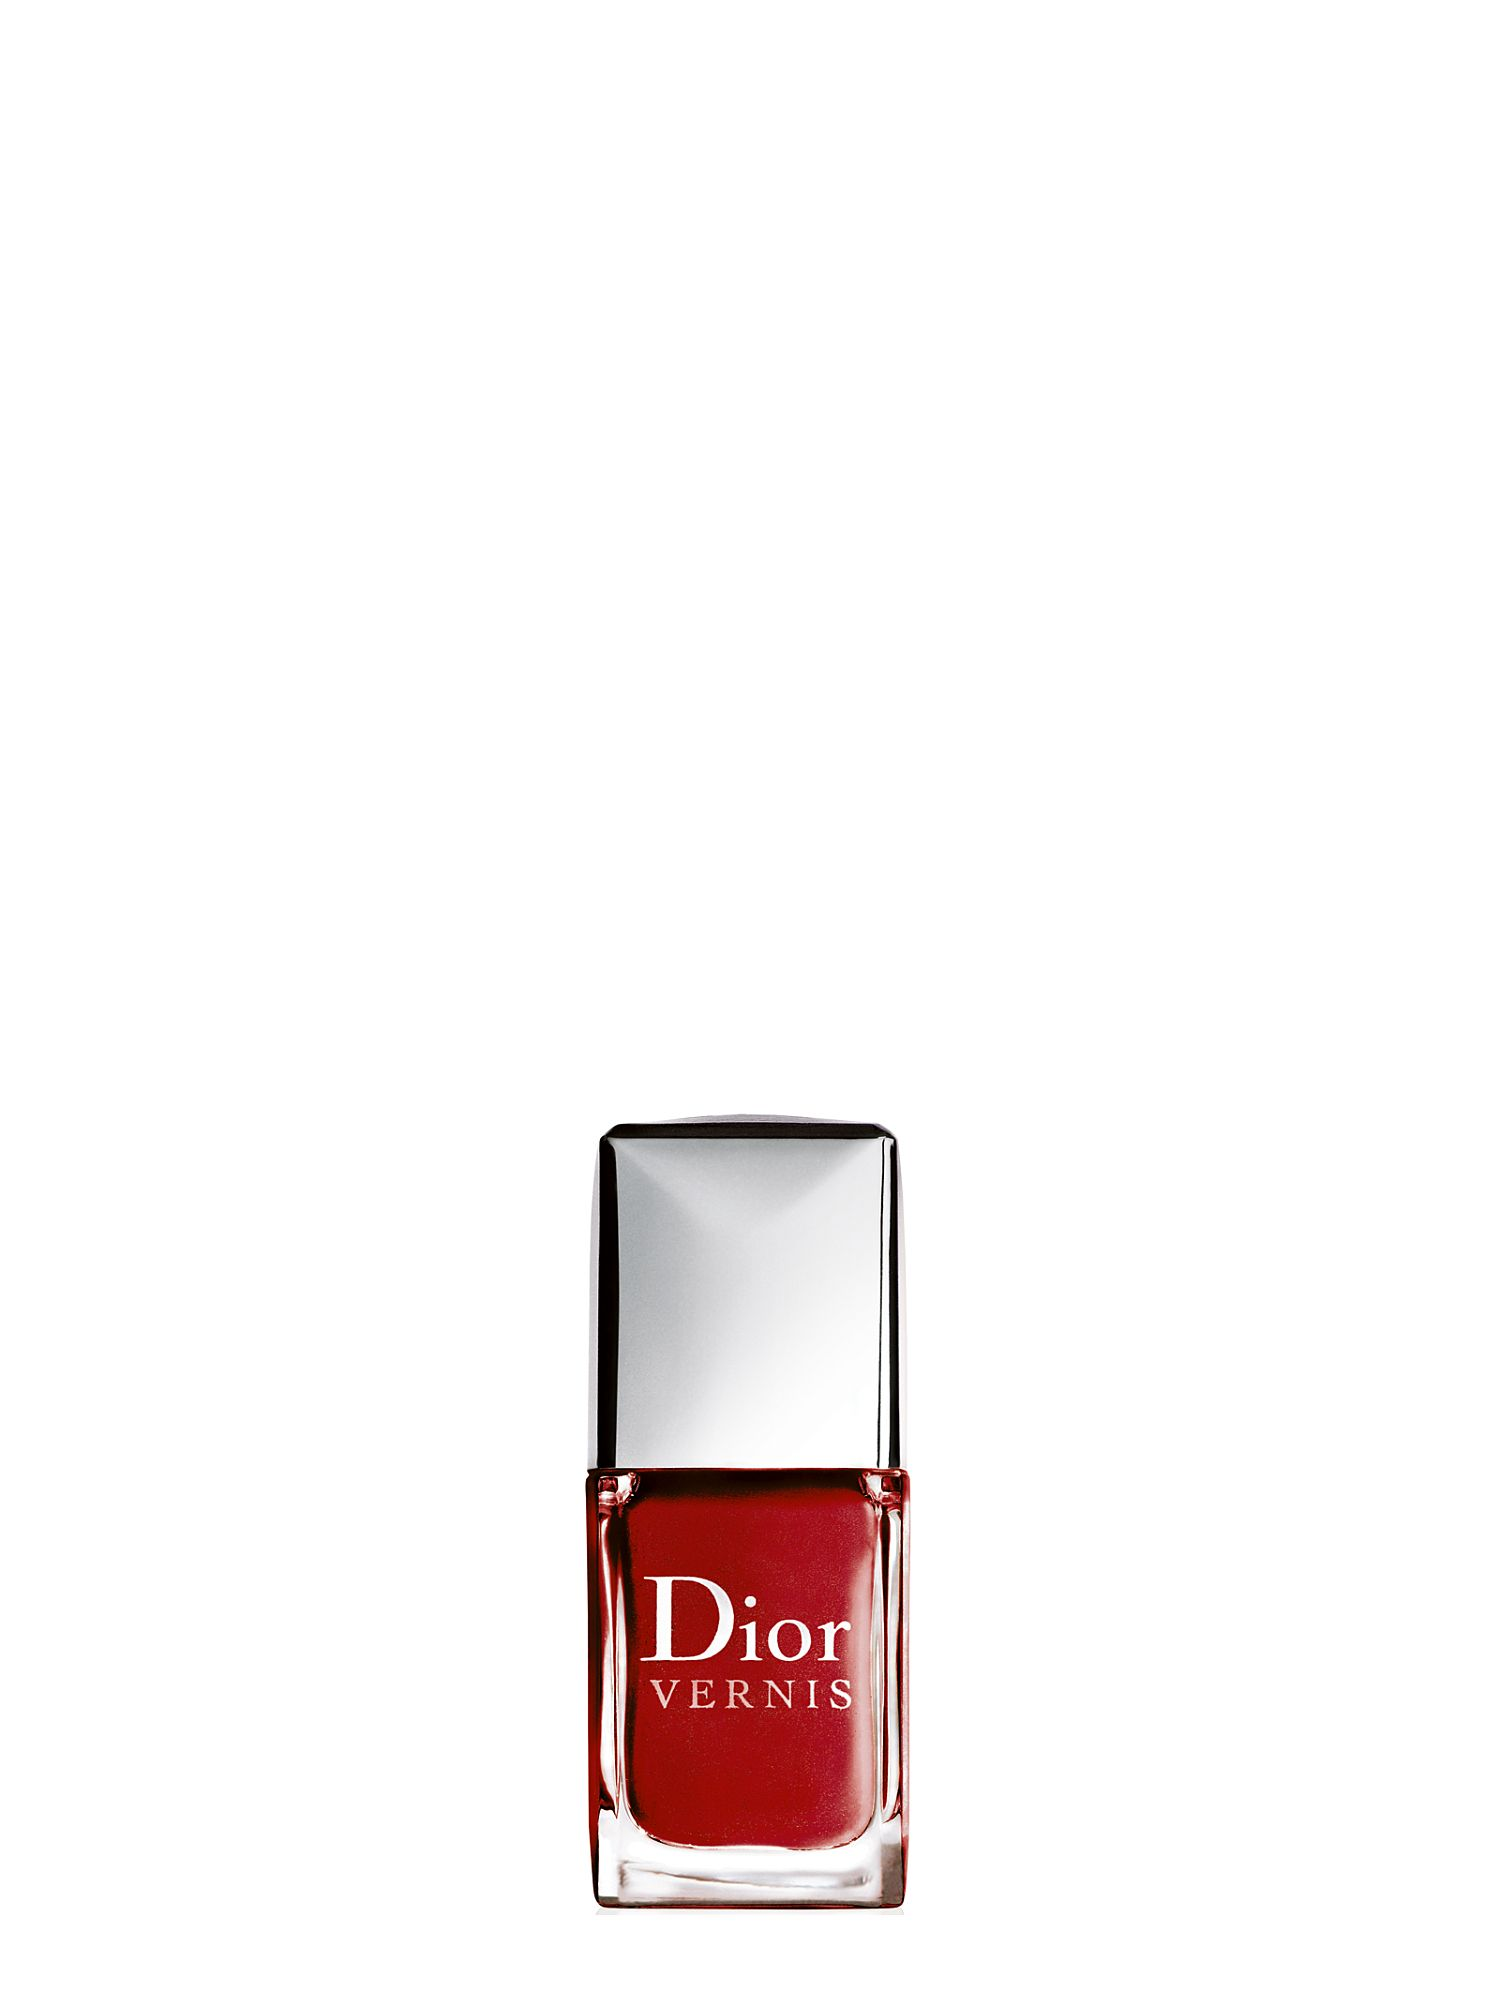 Dior Vernis Long-Wearing Nail Lacquer ROSE BOREAL product image